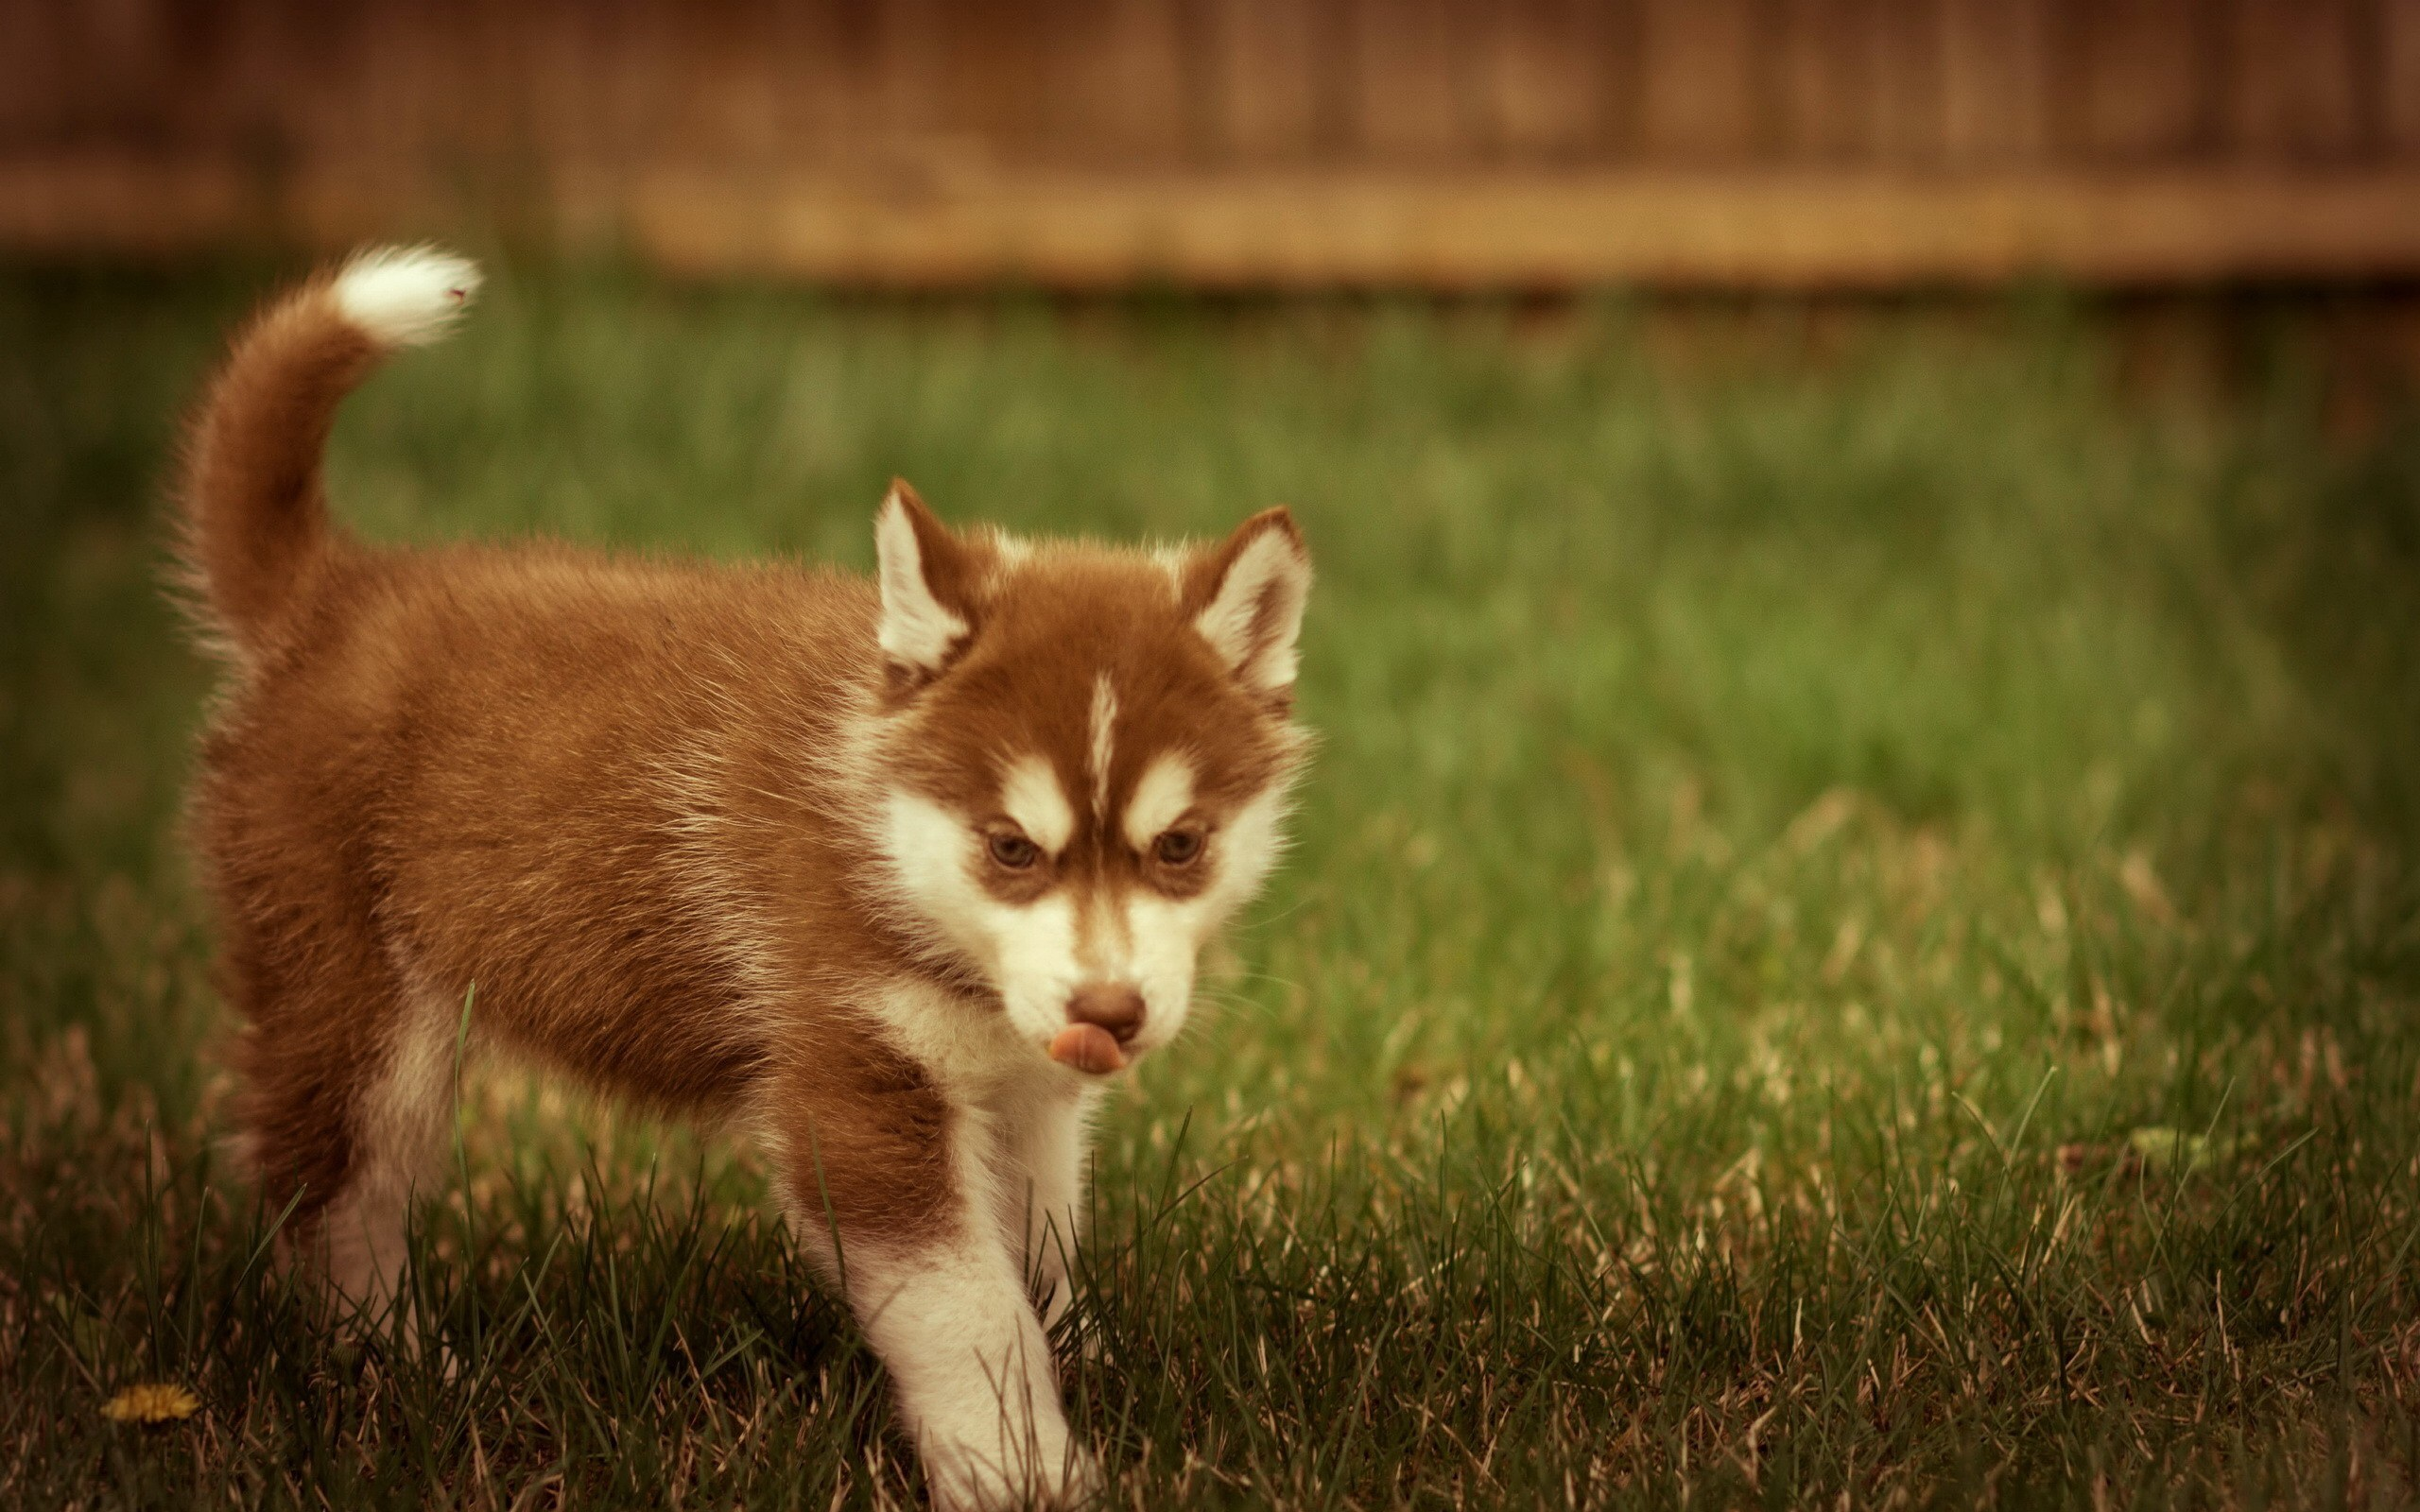 Cute Male Baby Wallpapers Ginger Husky Wallpapers Ginger Husky Stock Photos